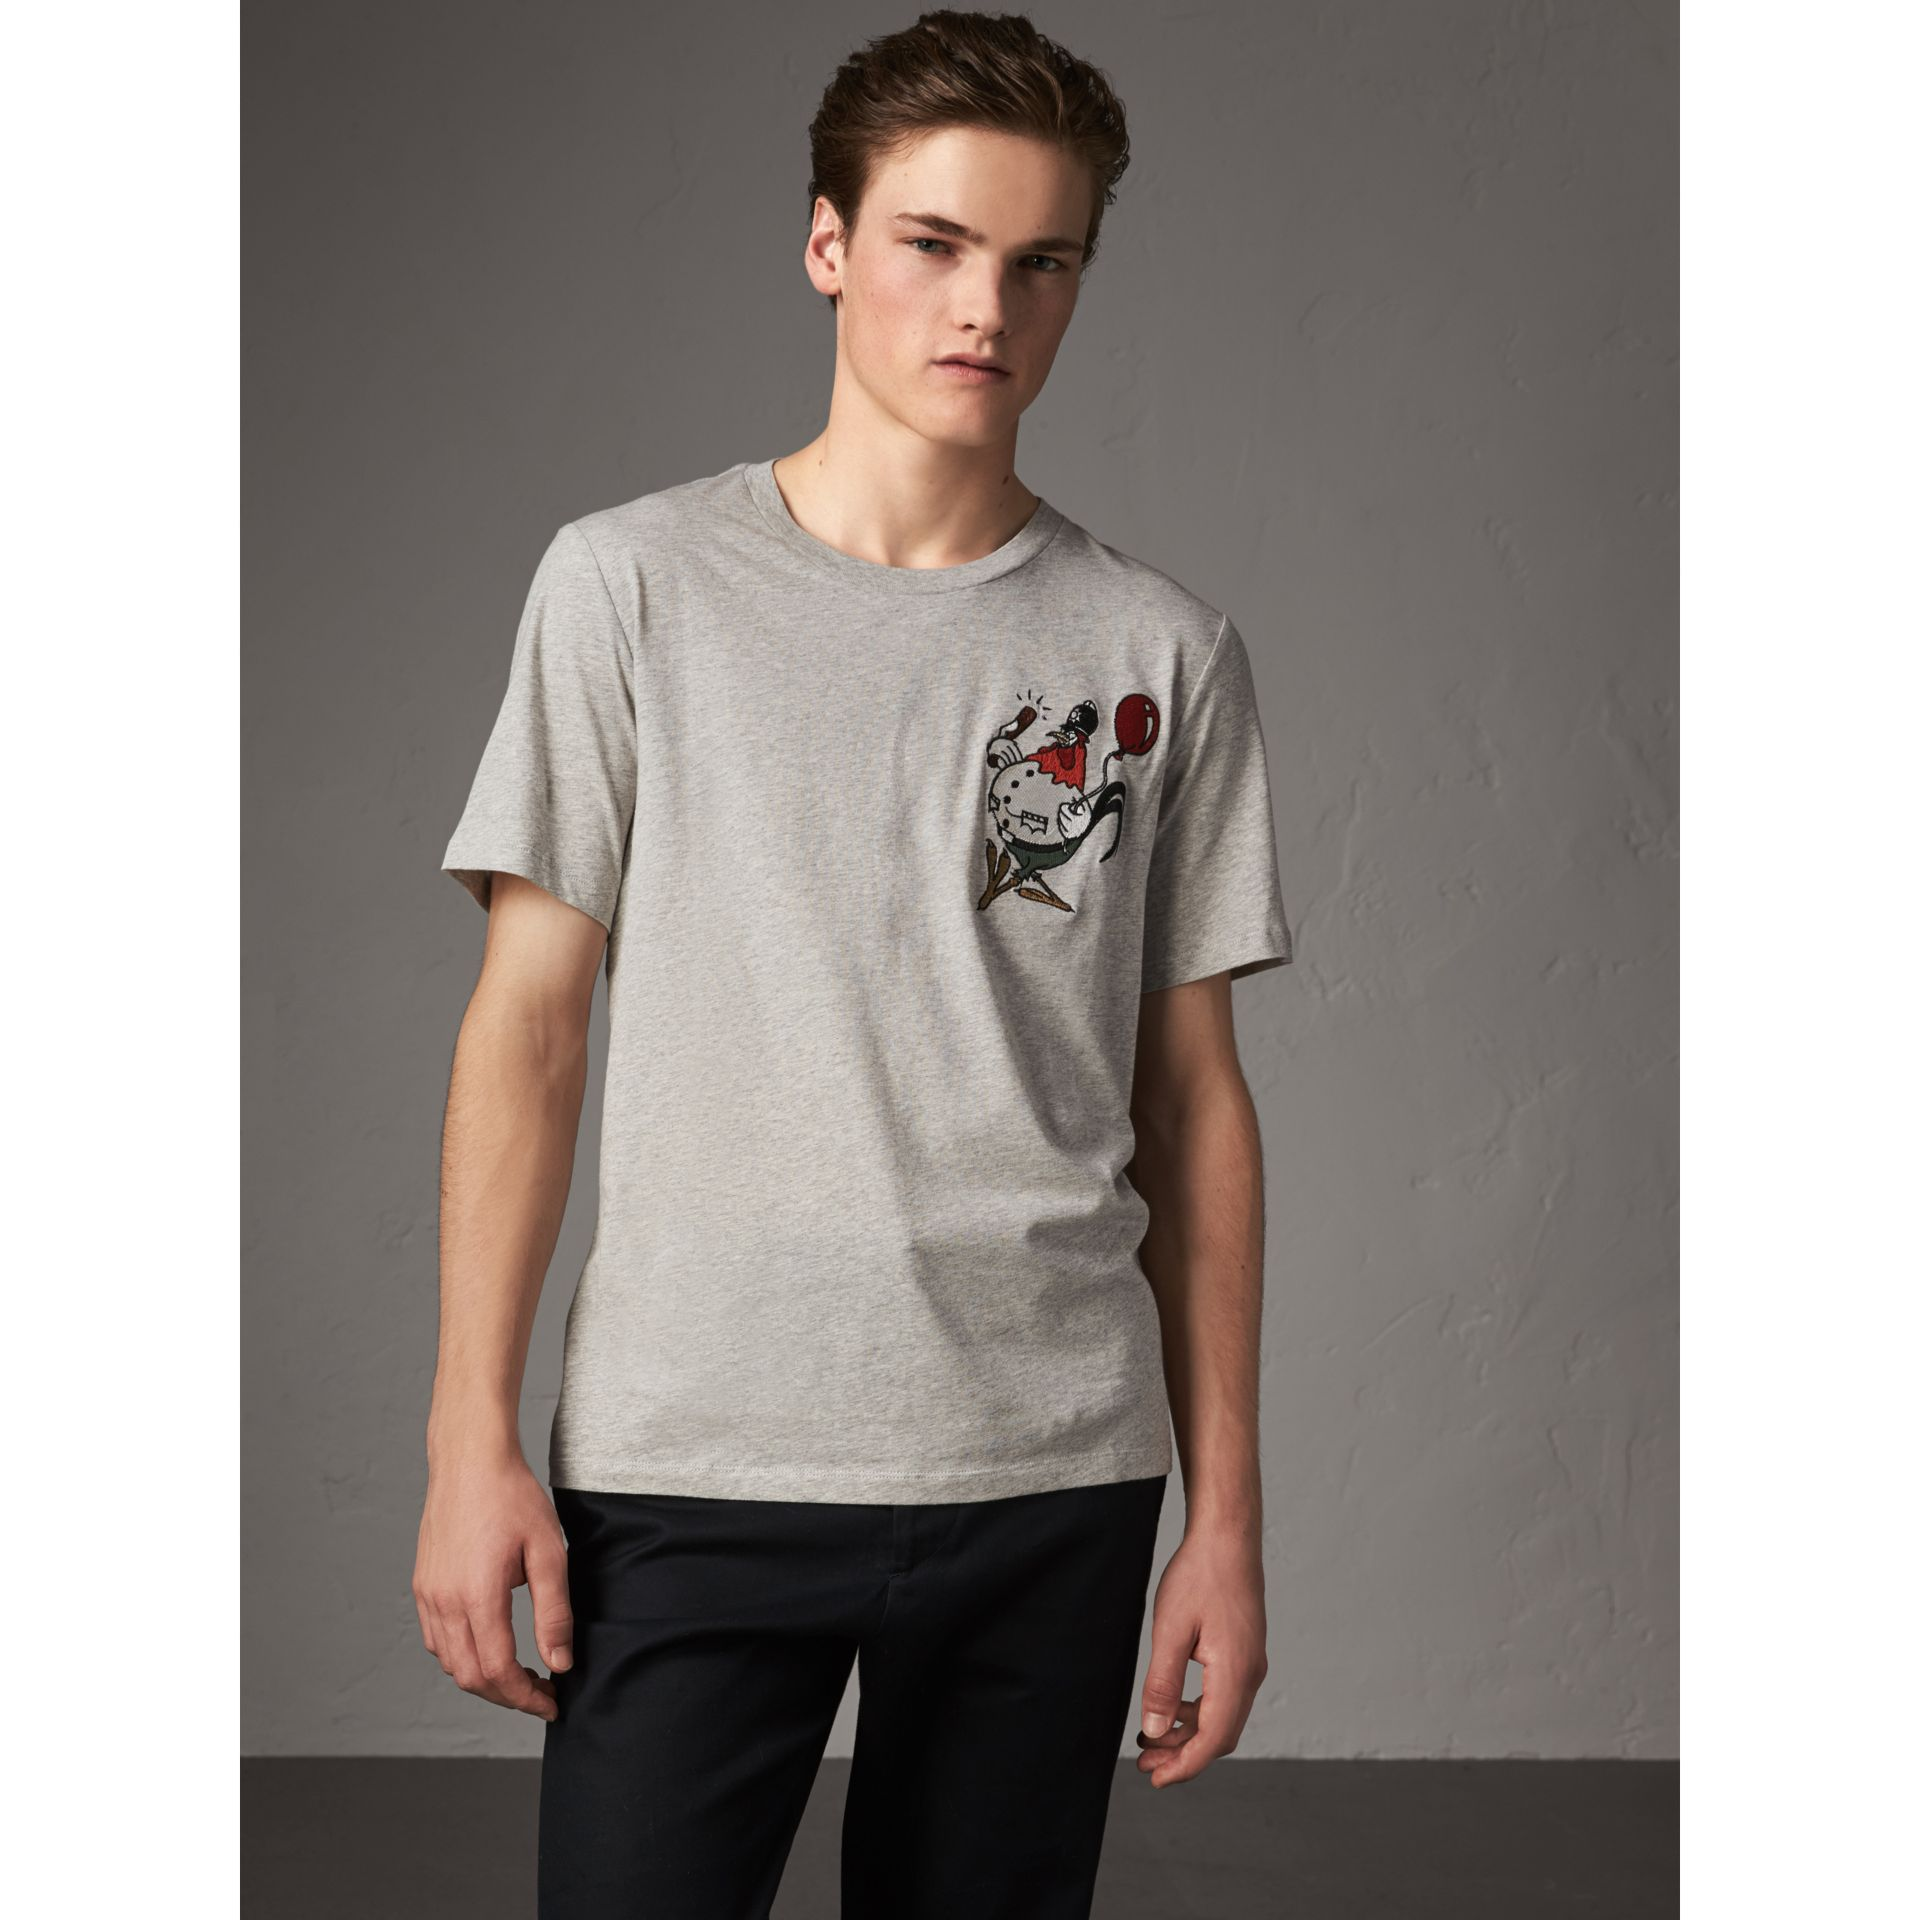 Sketch Appliqué Cotton T-shirt in Pale Grey Melange - Men | Burberry - gallery image 1